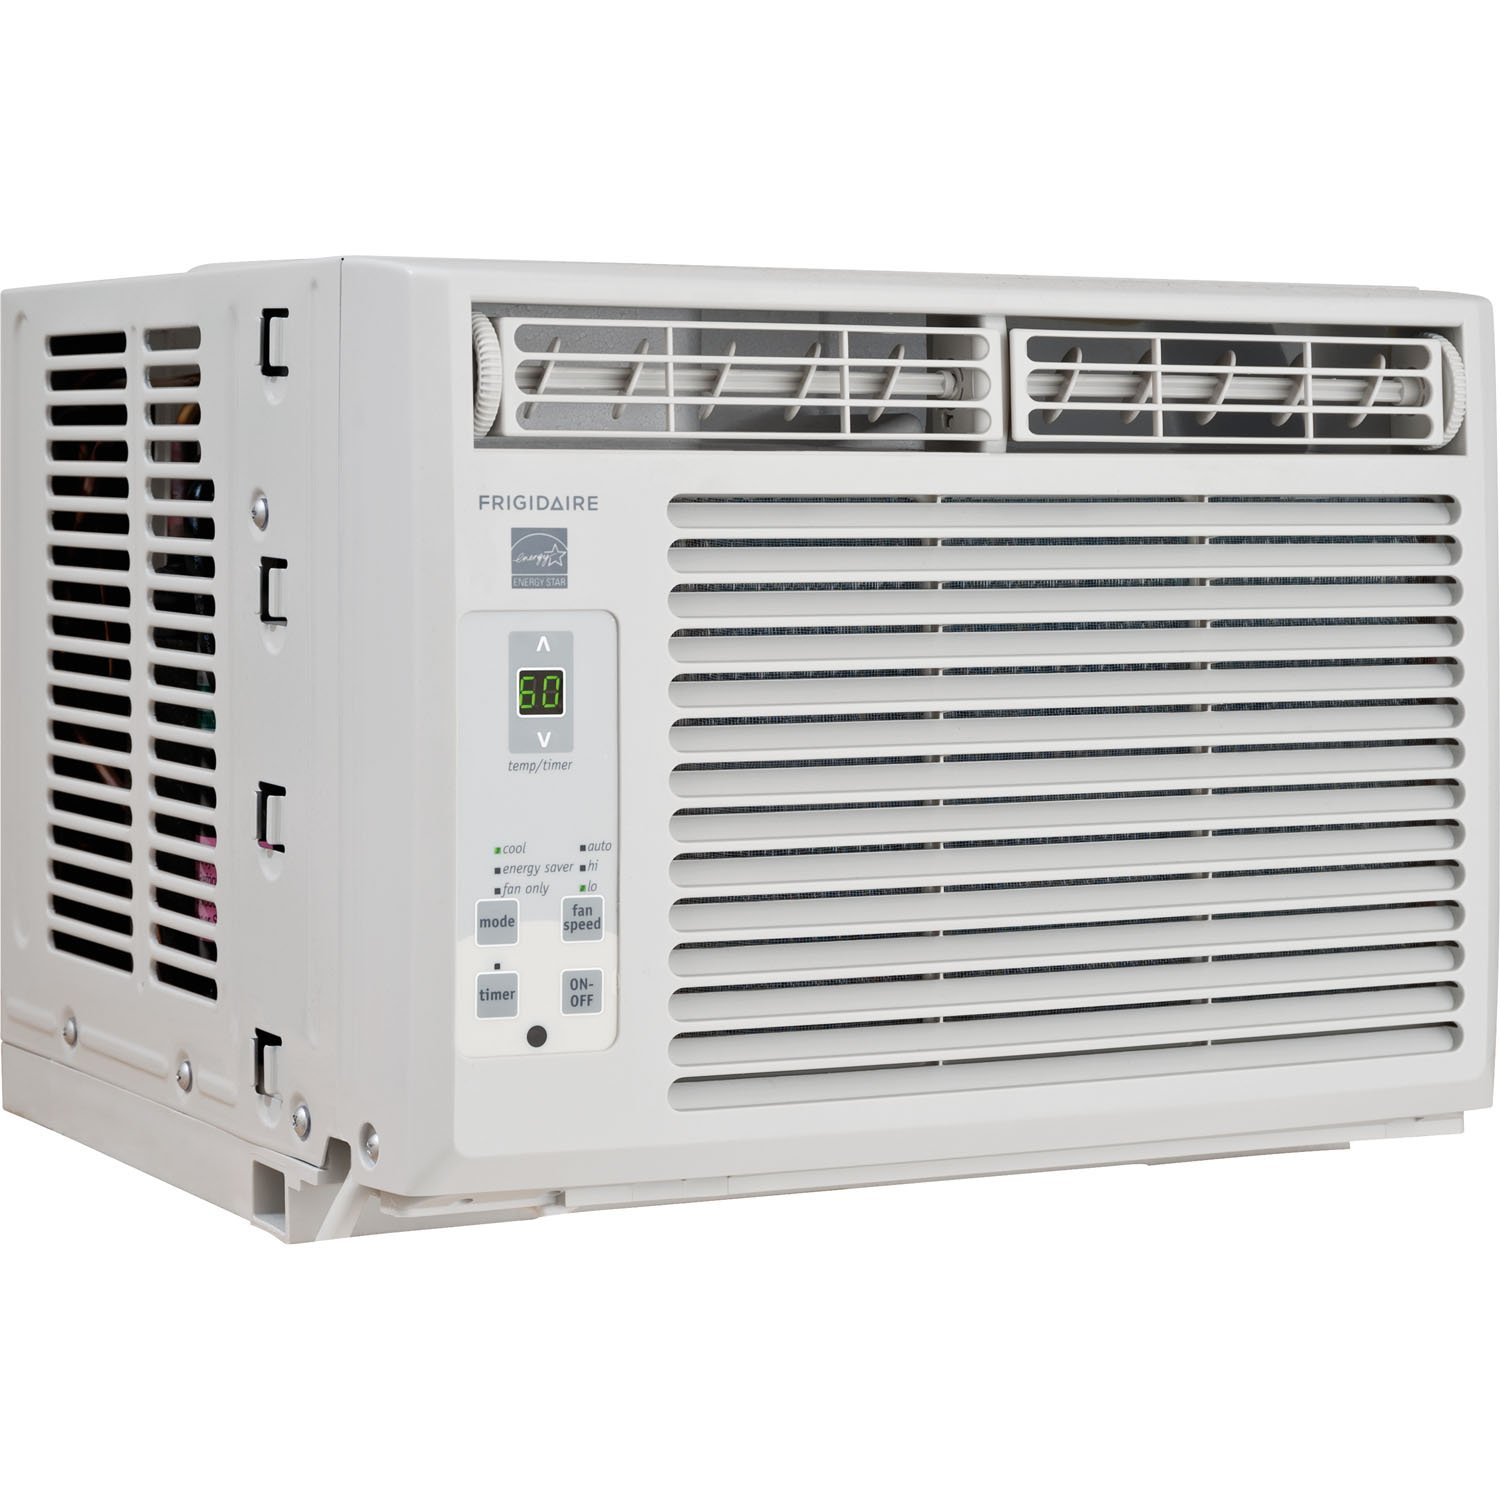 kenmore 5000 btu air conditioner. amazon.com: frigidaire ffre0533s1 5,000 btu 115v window-mounted mini-compact air conditioner with full-function remote control: home \u0026 kitchen kenmore 5000 btu